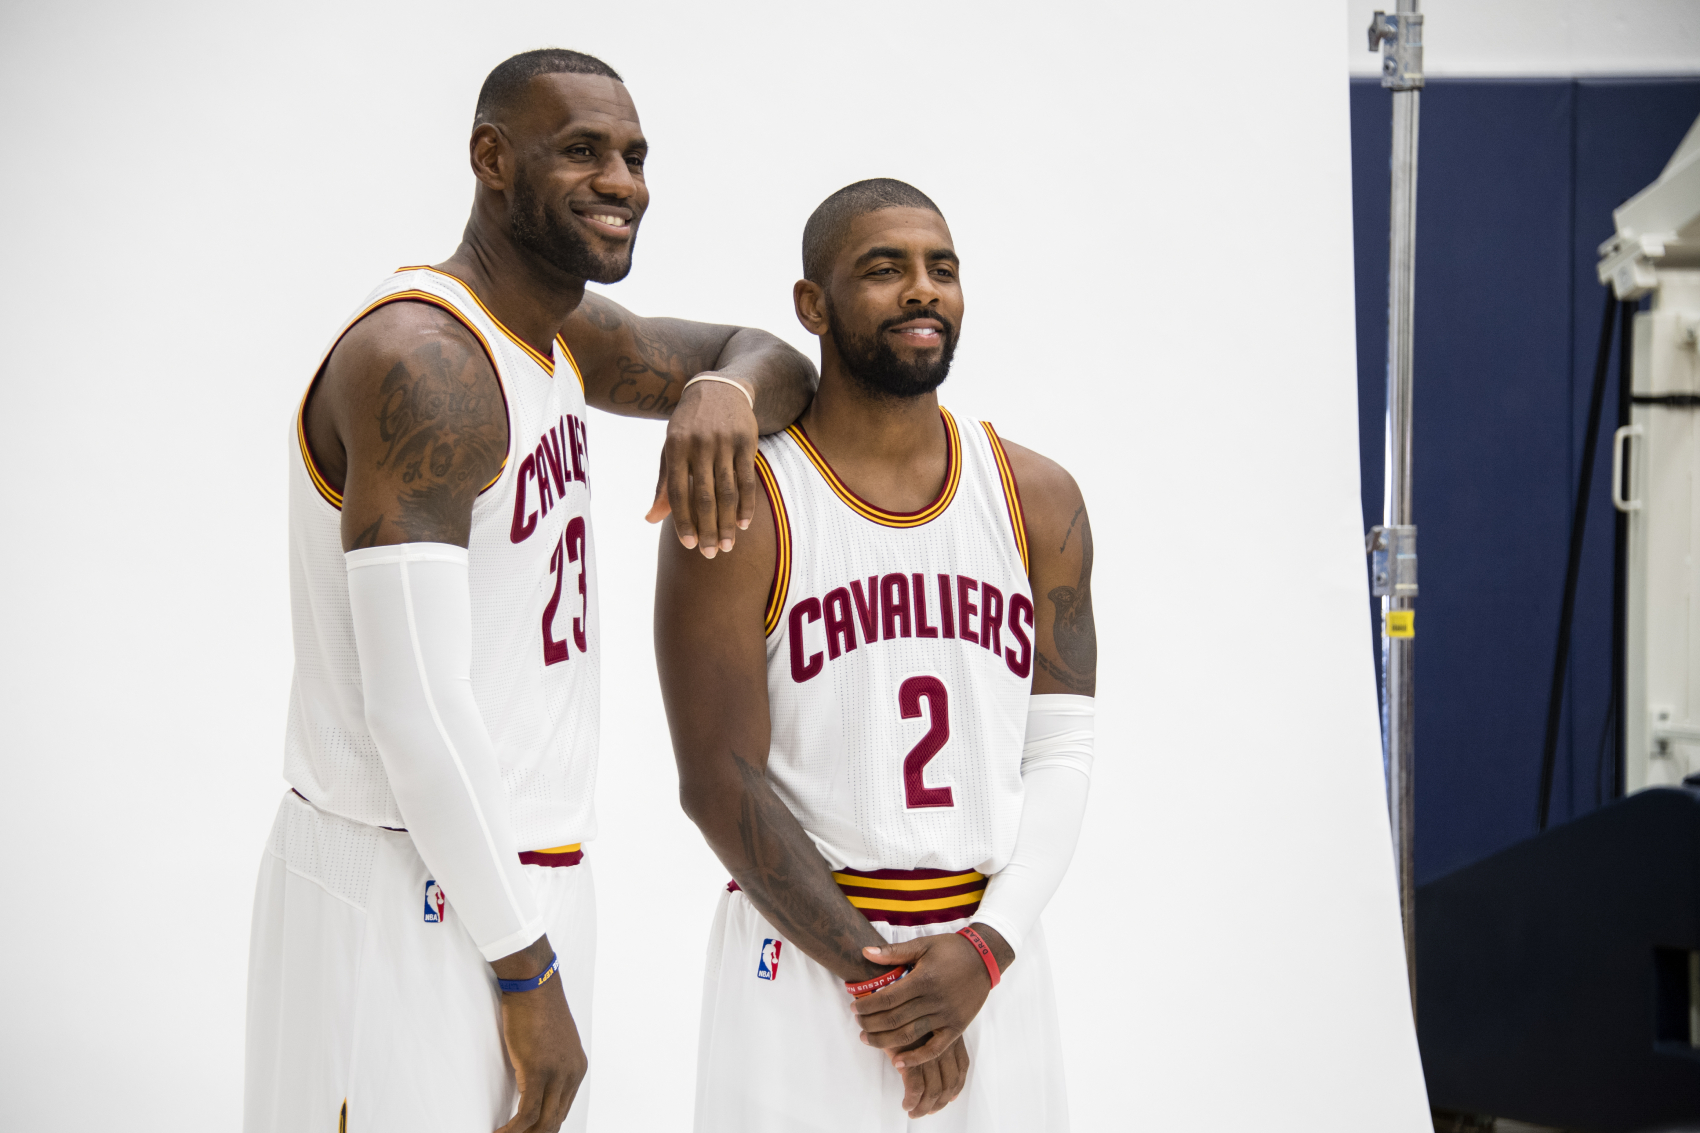 LeBron James and Kyrie Irving had a ton of success together on the Cavaliers. James has admitted that Irving recently hurt his feelings.